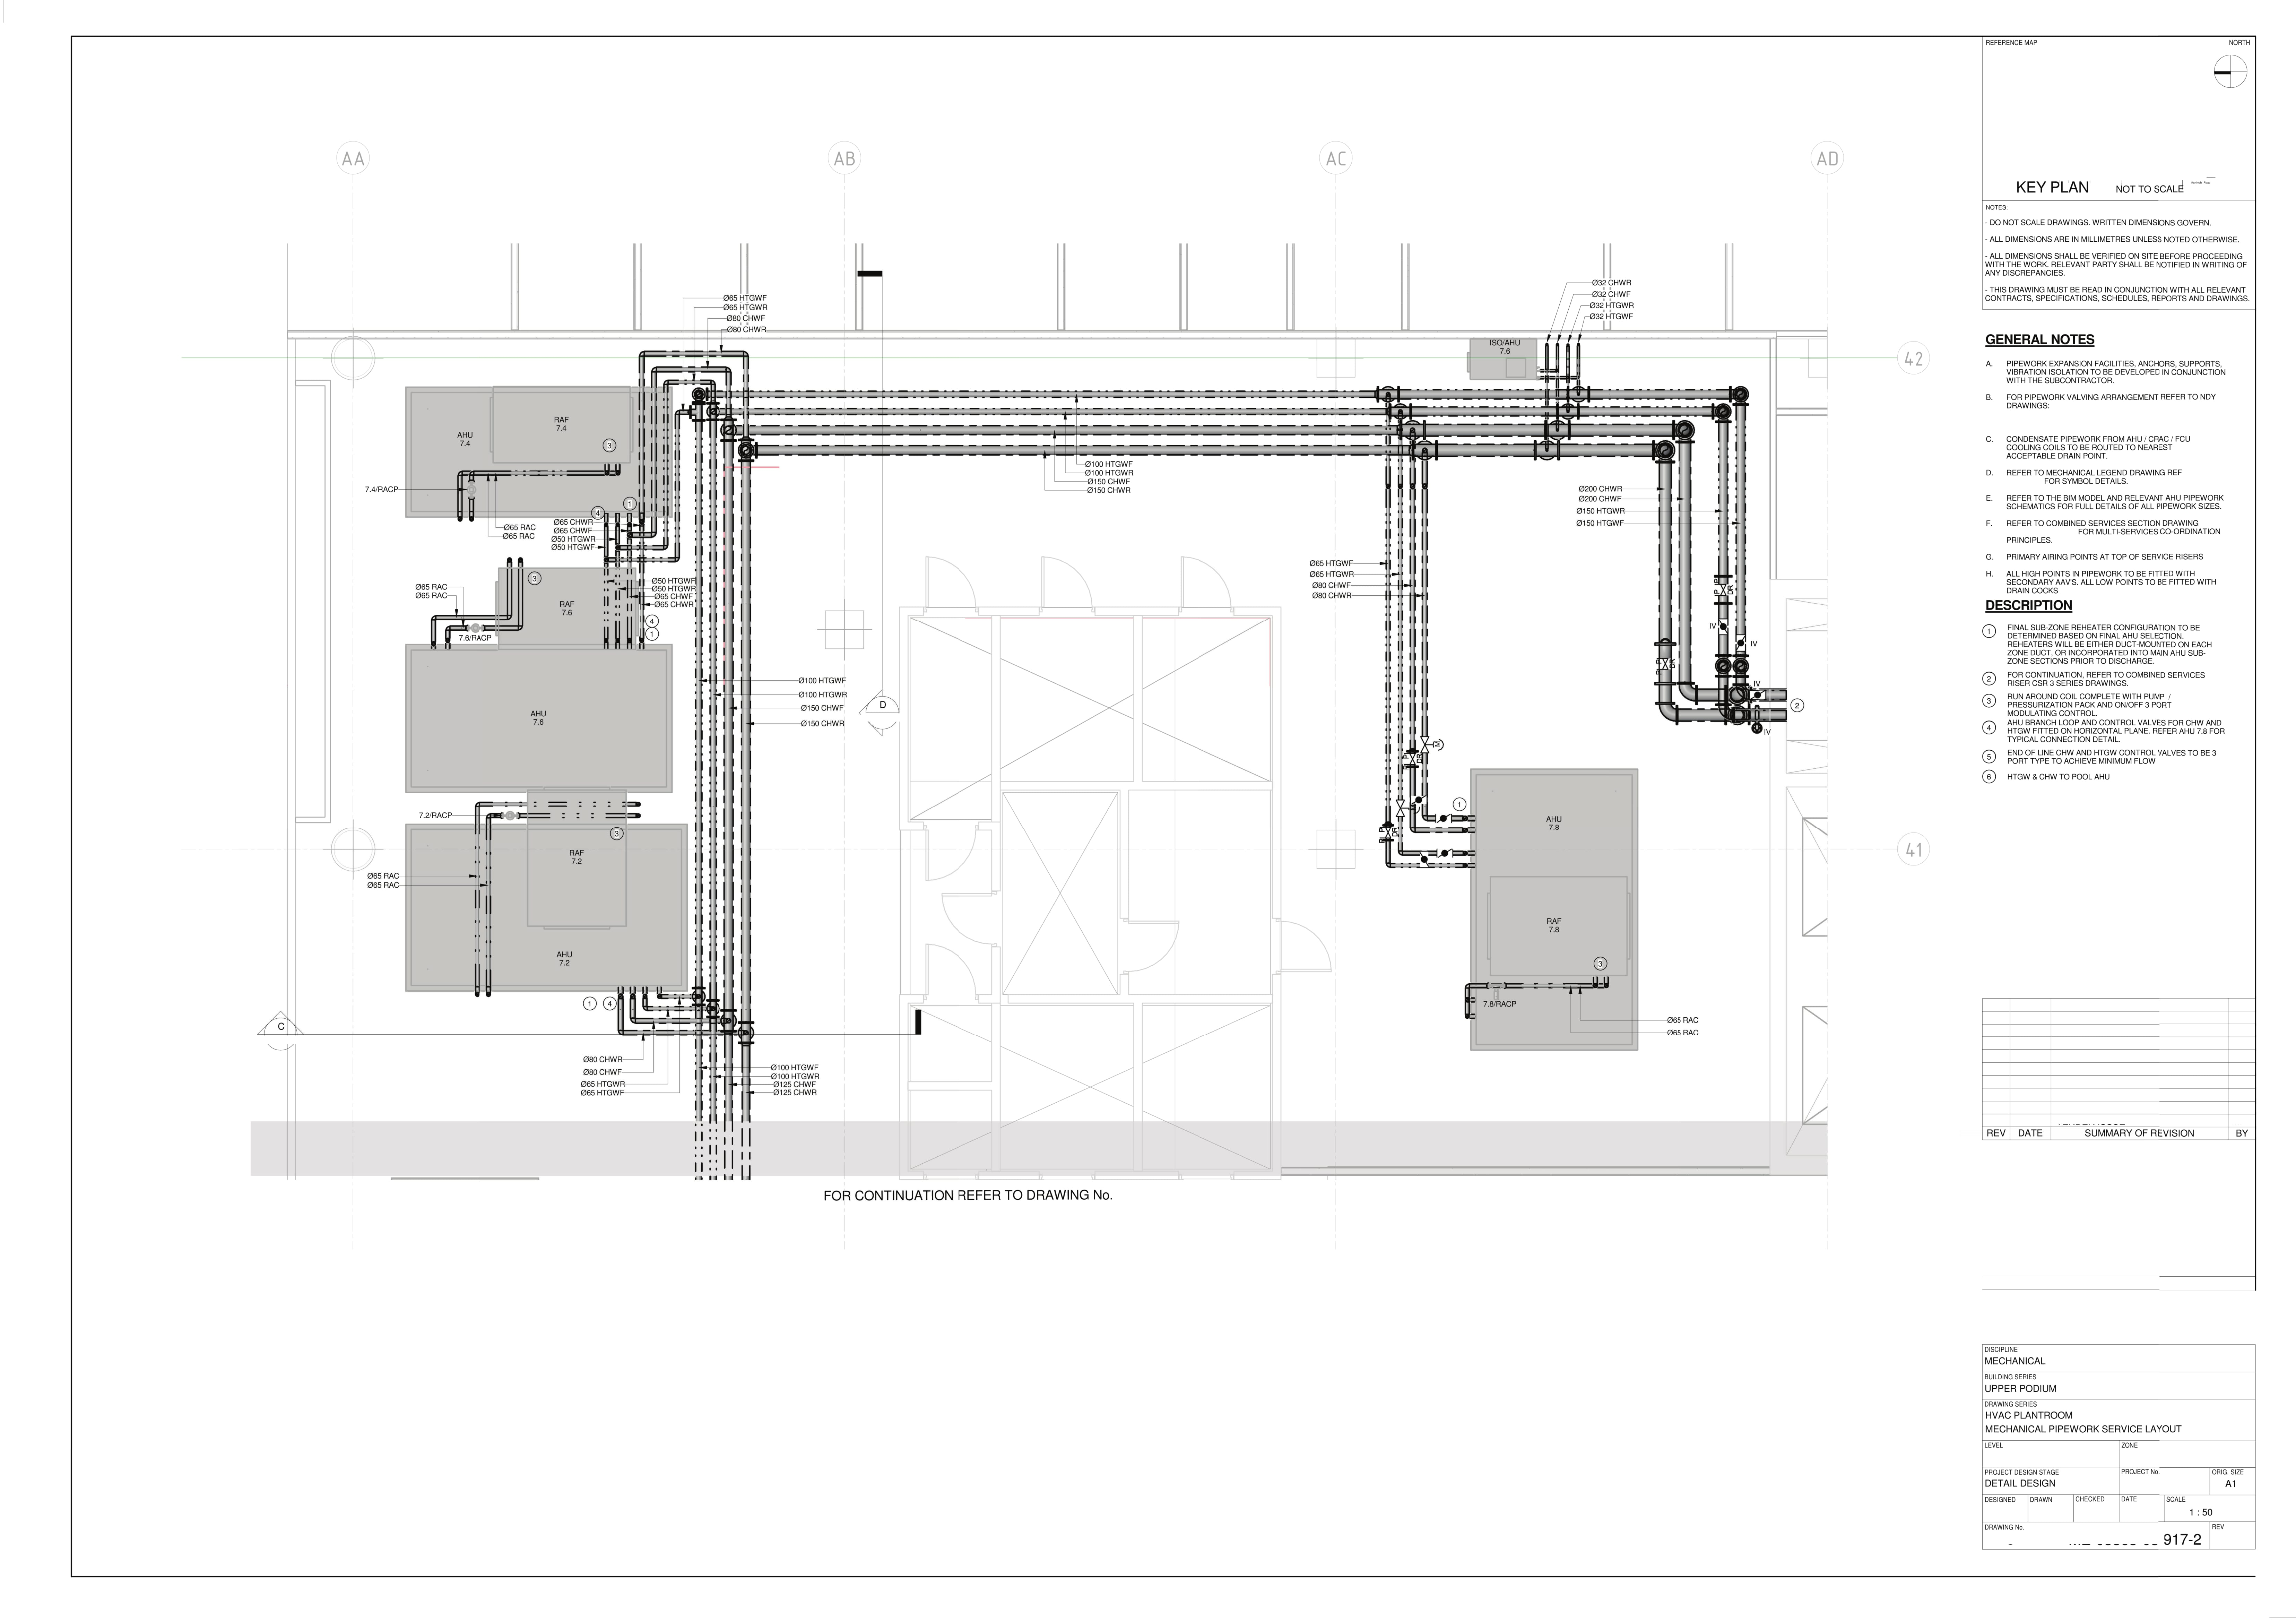 Mechanical Pipework Service Layout 2